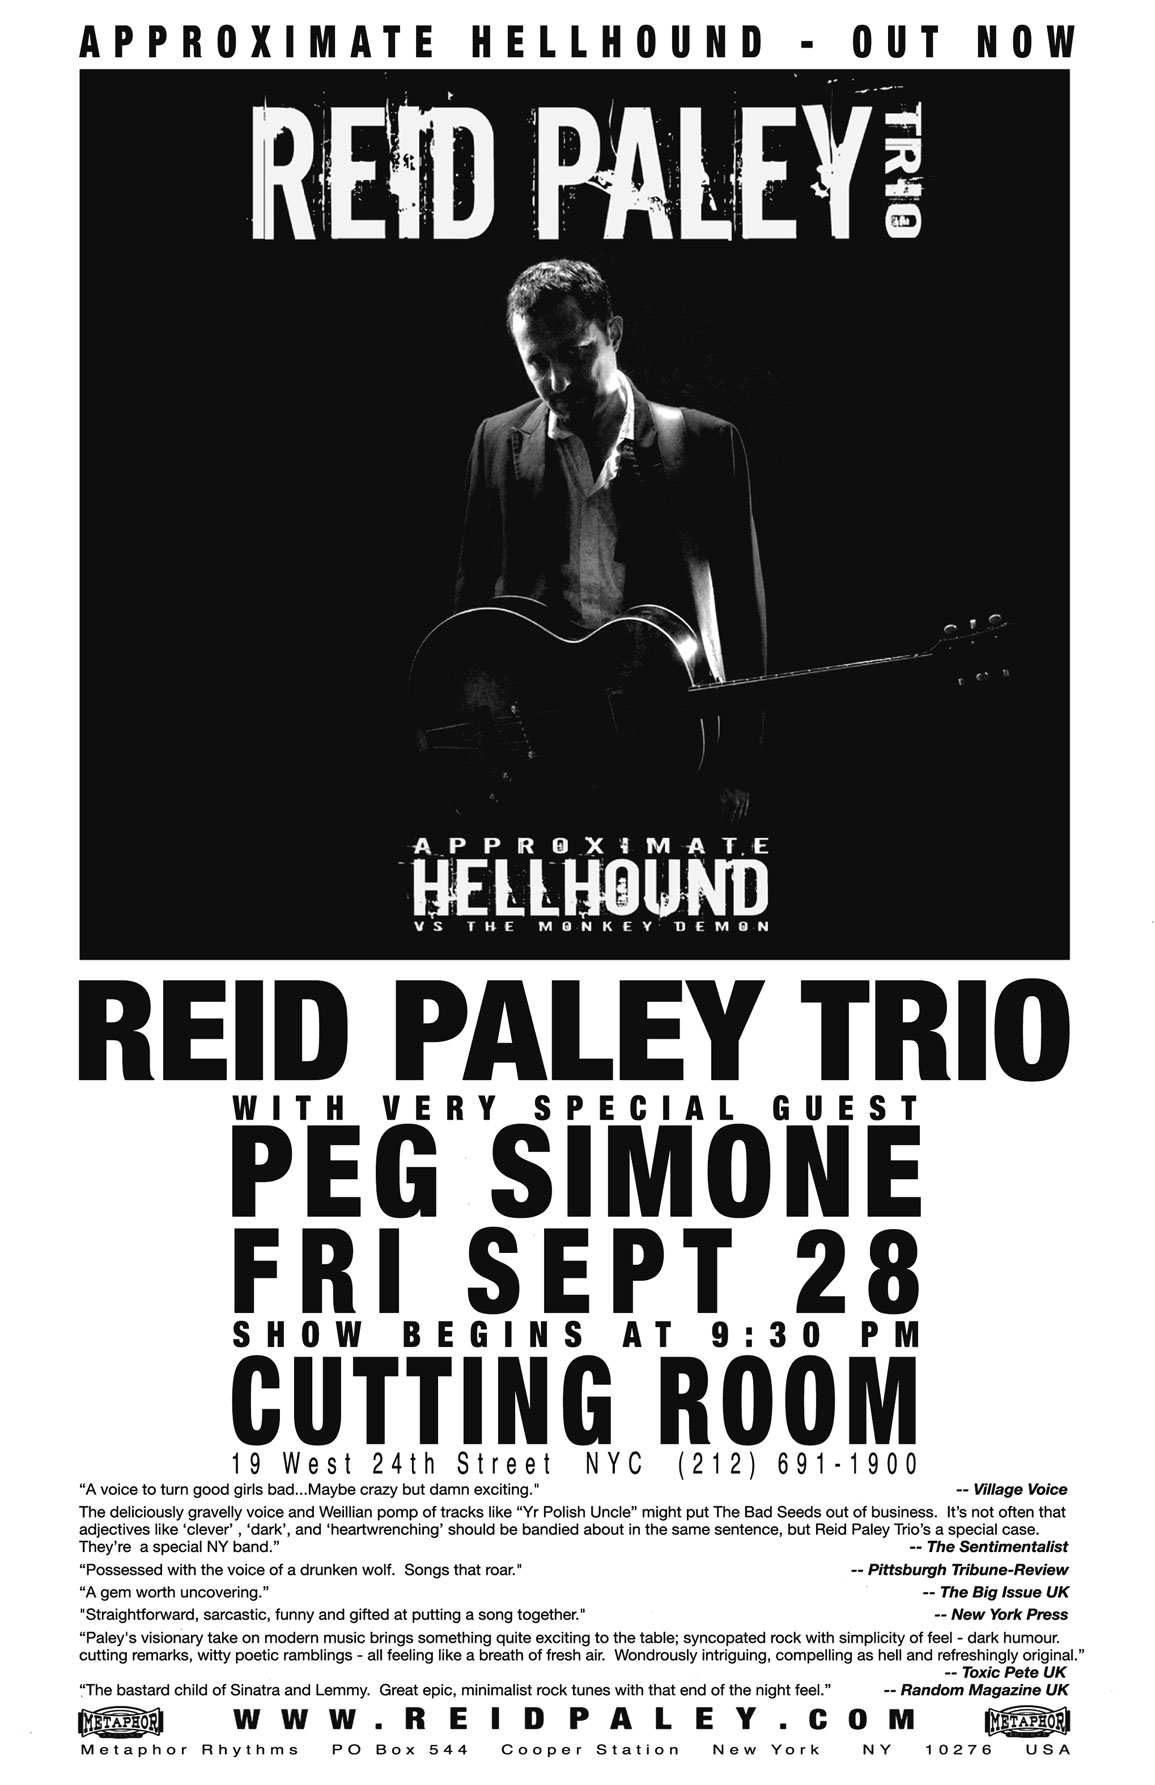 REID PALEY TRIO at the Cutting Room with Peg Simone 2007